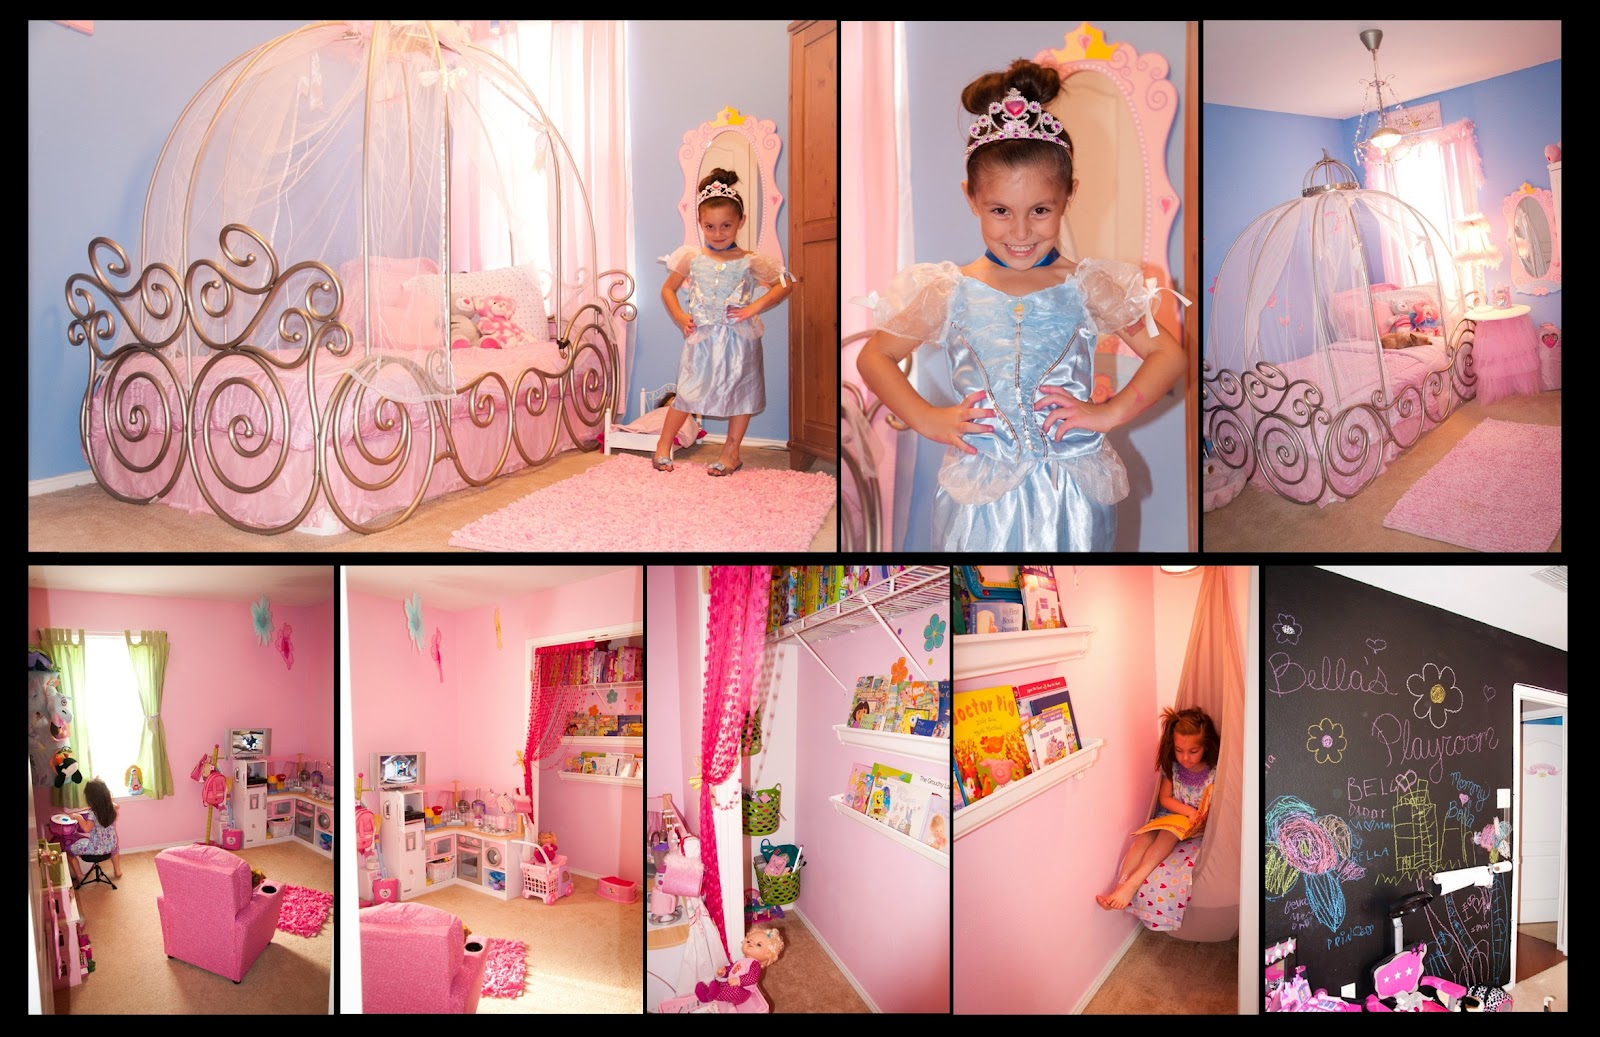 The oxford place diaries how do you momage stephanie for 5 year girl bedroom ideas